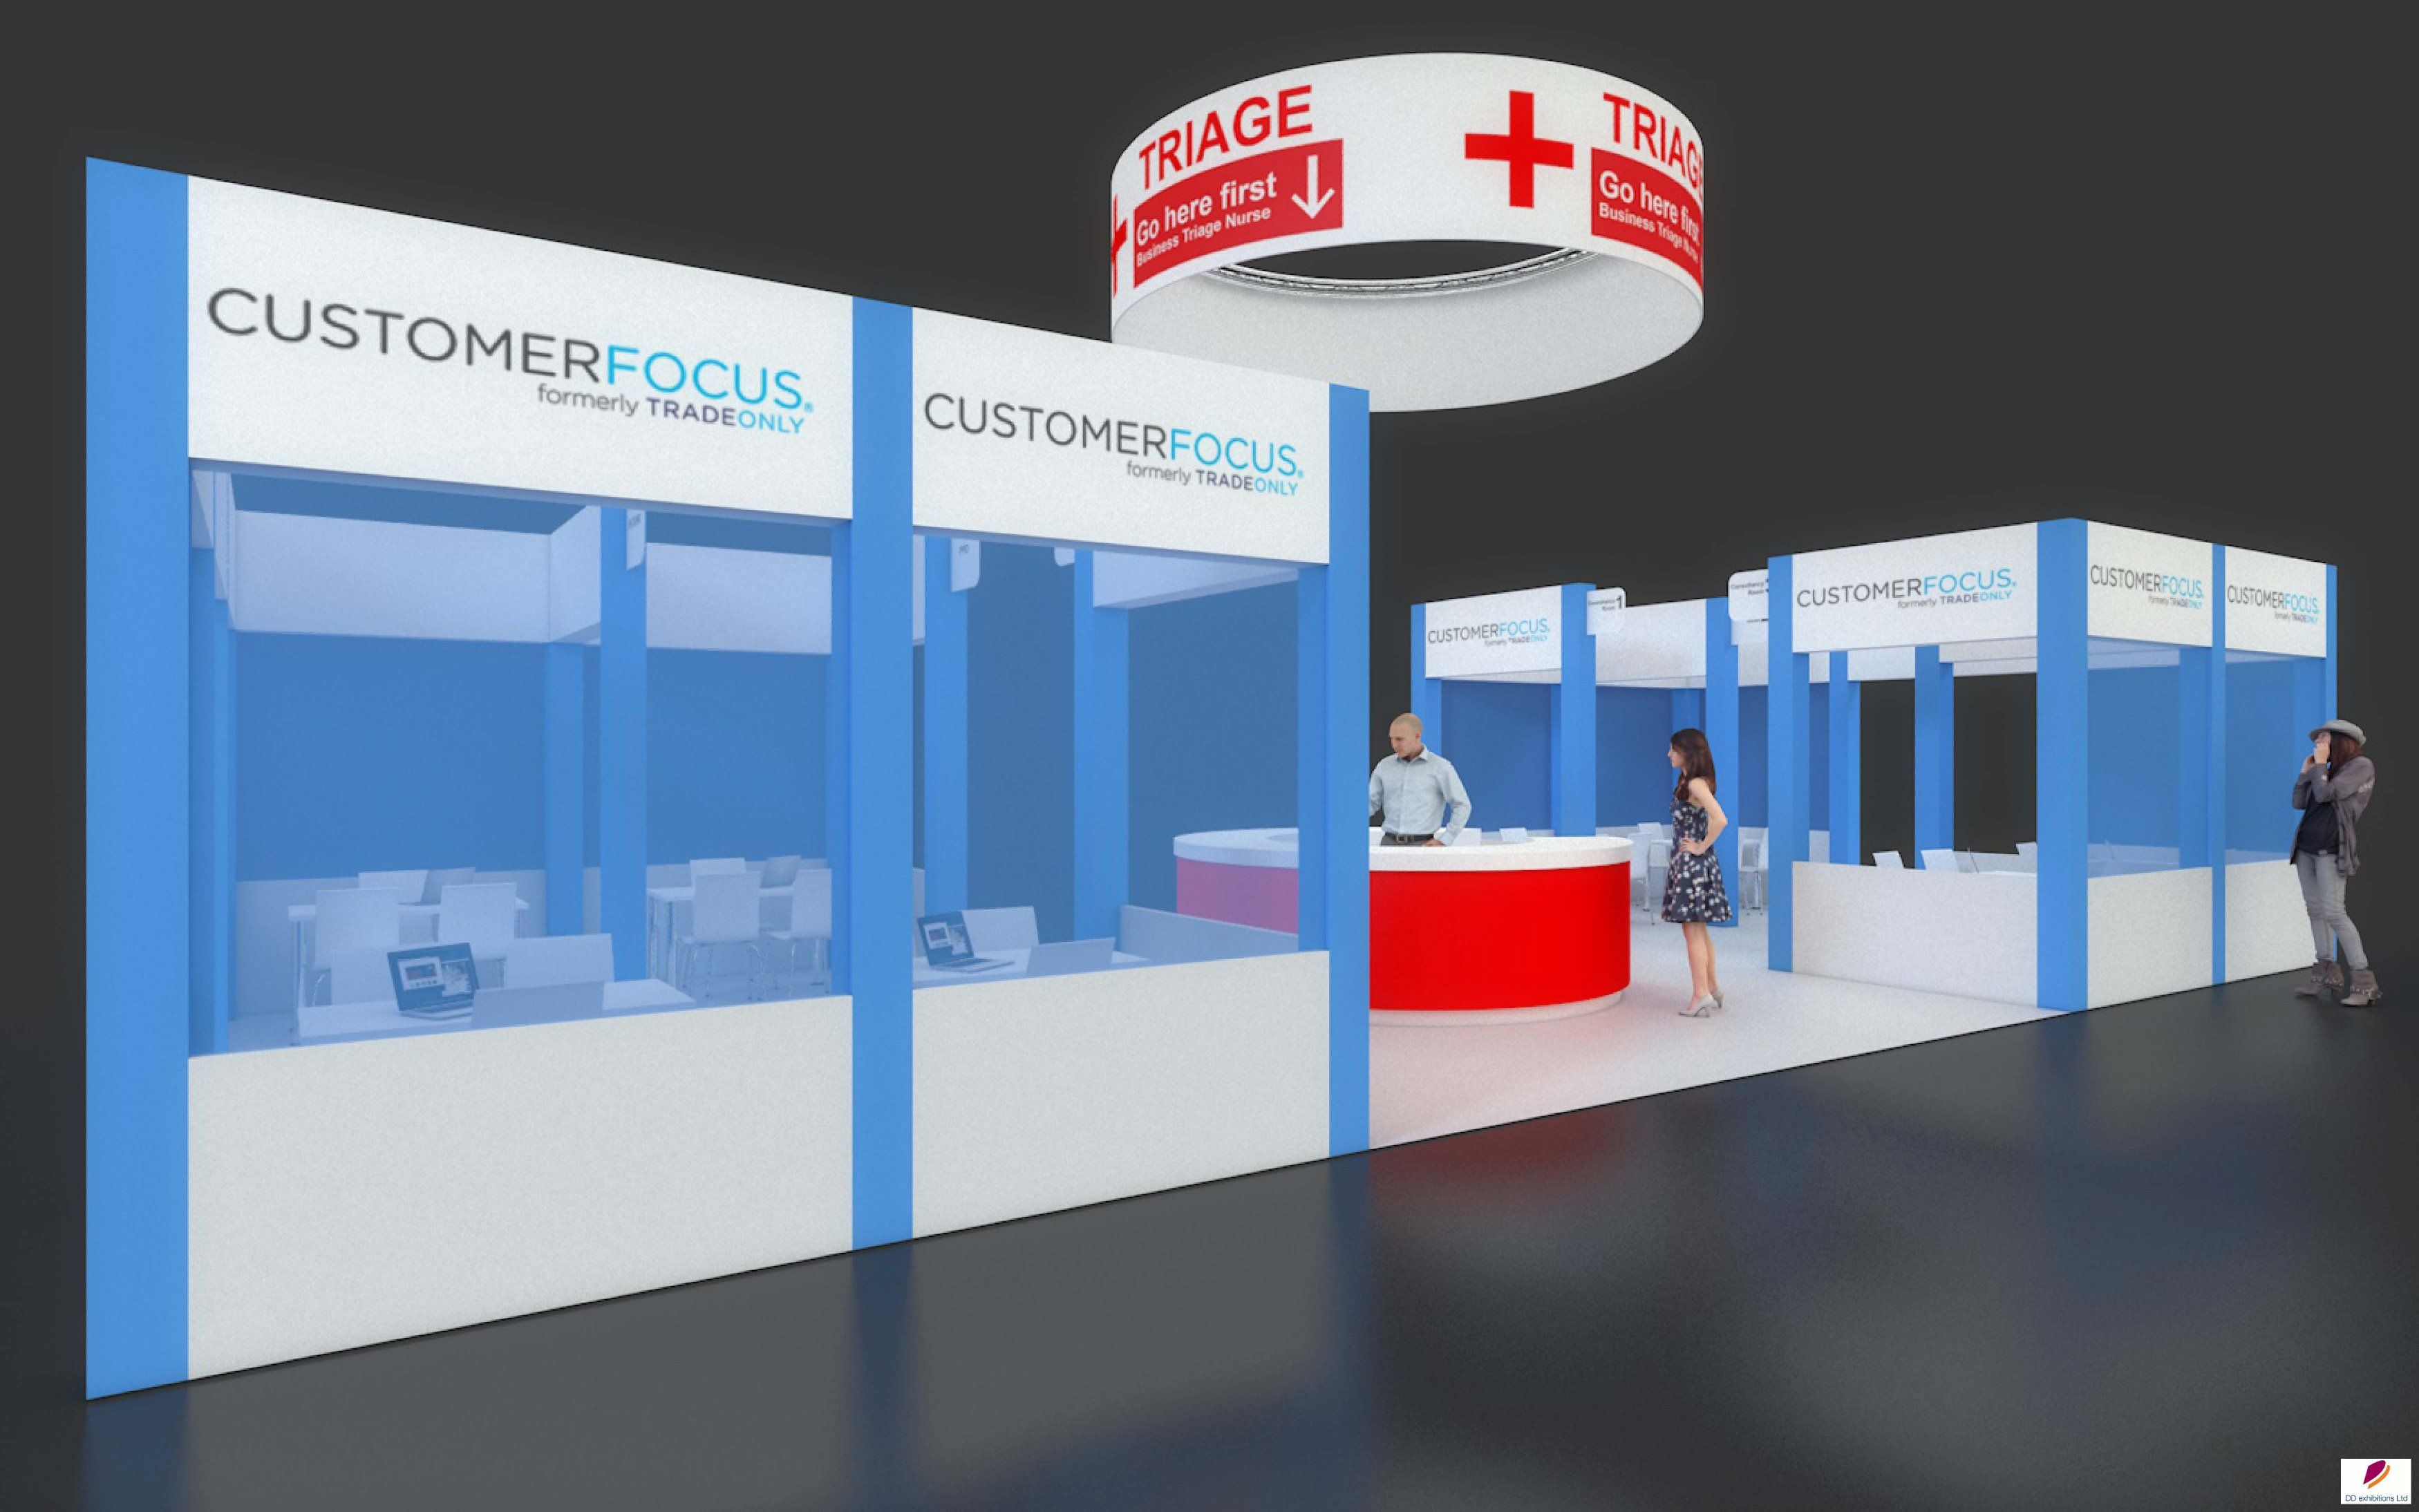 Exhibition Stand Organisers : Exhibition stand design: stand design created for customer focus